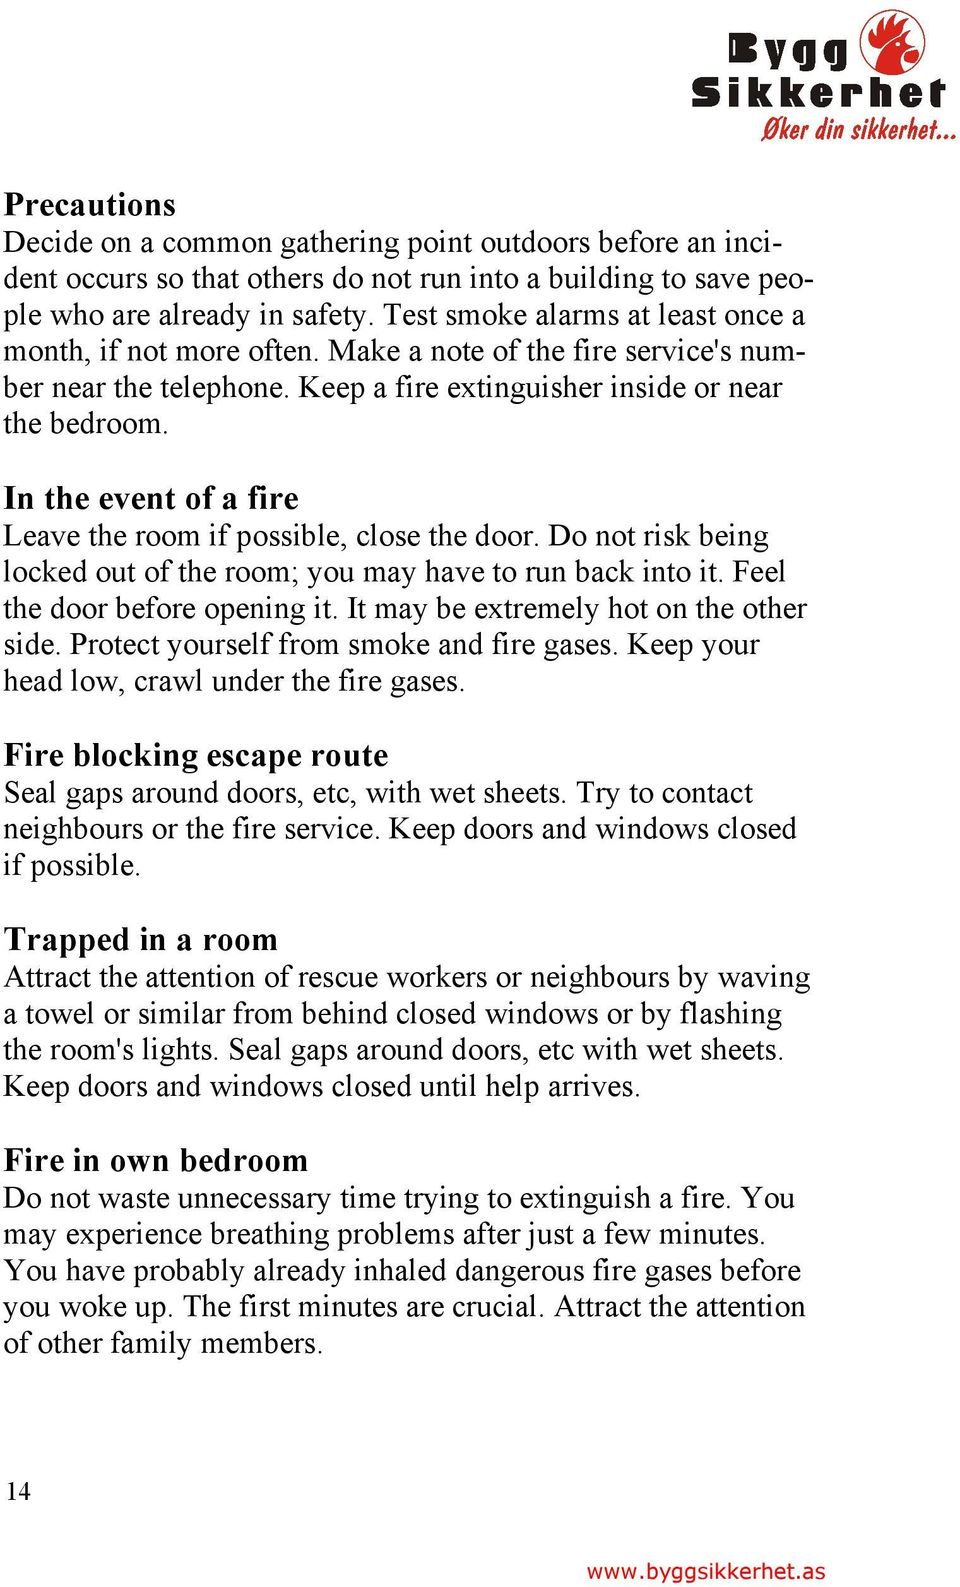 In the event of a fire Leave the room if possible, close the door. Do not risk being locked out of the room; you may have to run back into it. Feel the door before opening it.